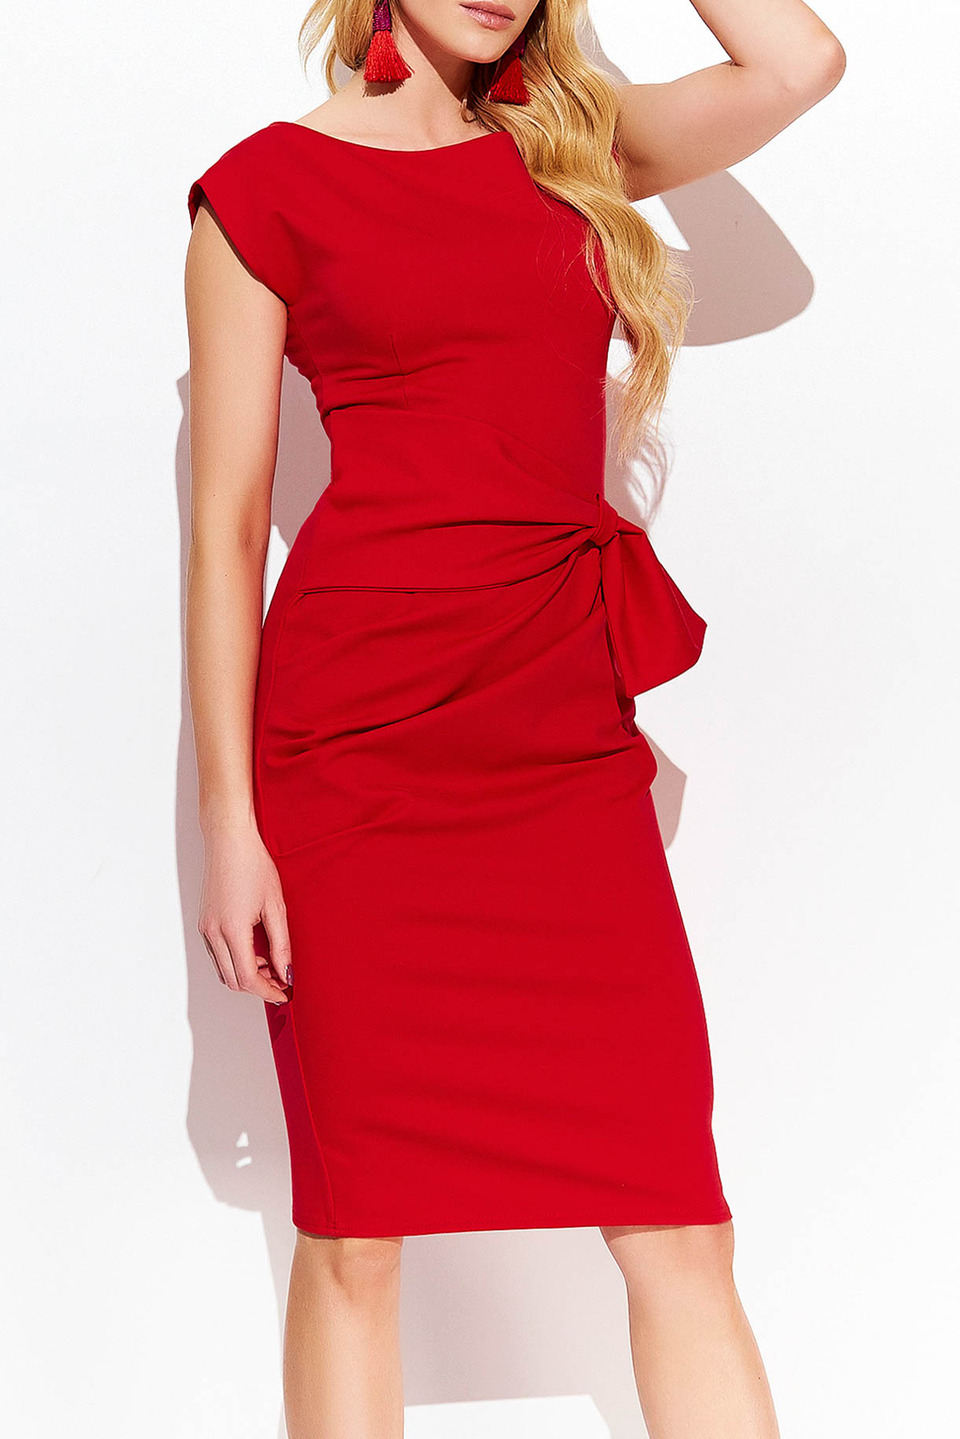 HARLEY DRESS IN RED